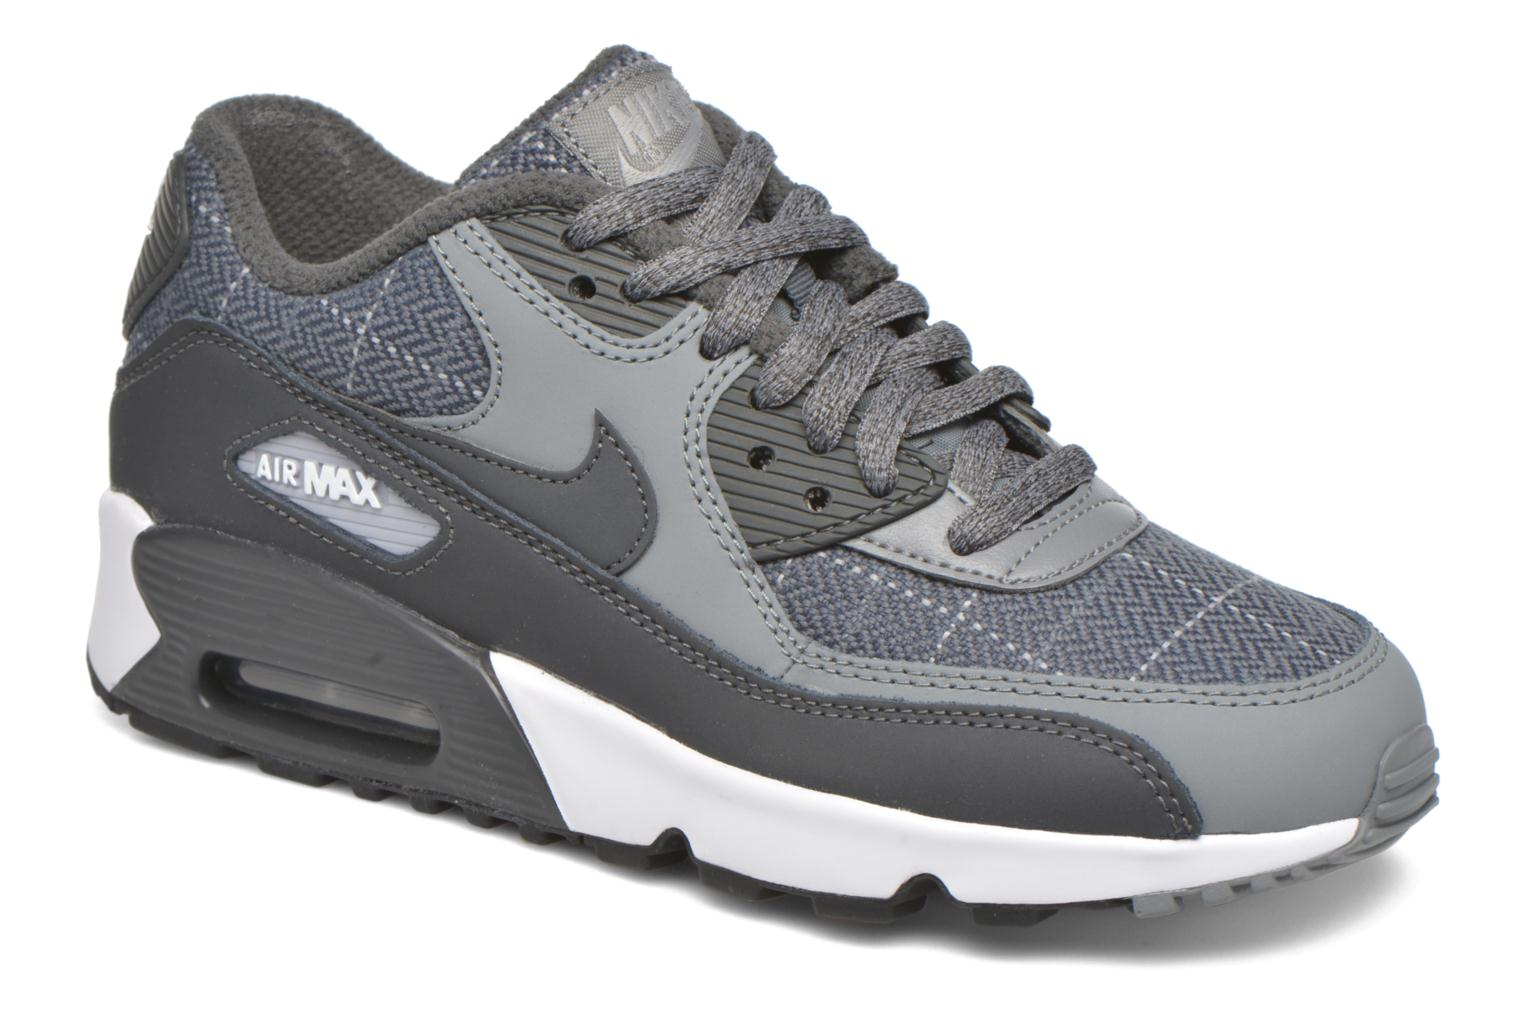 Nike Air Max 90 Se Ltr (Gs) Cool Grey/Anthracite-Wolf Grey-White